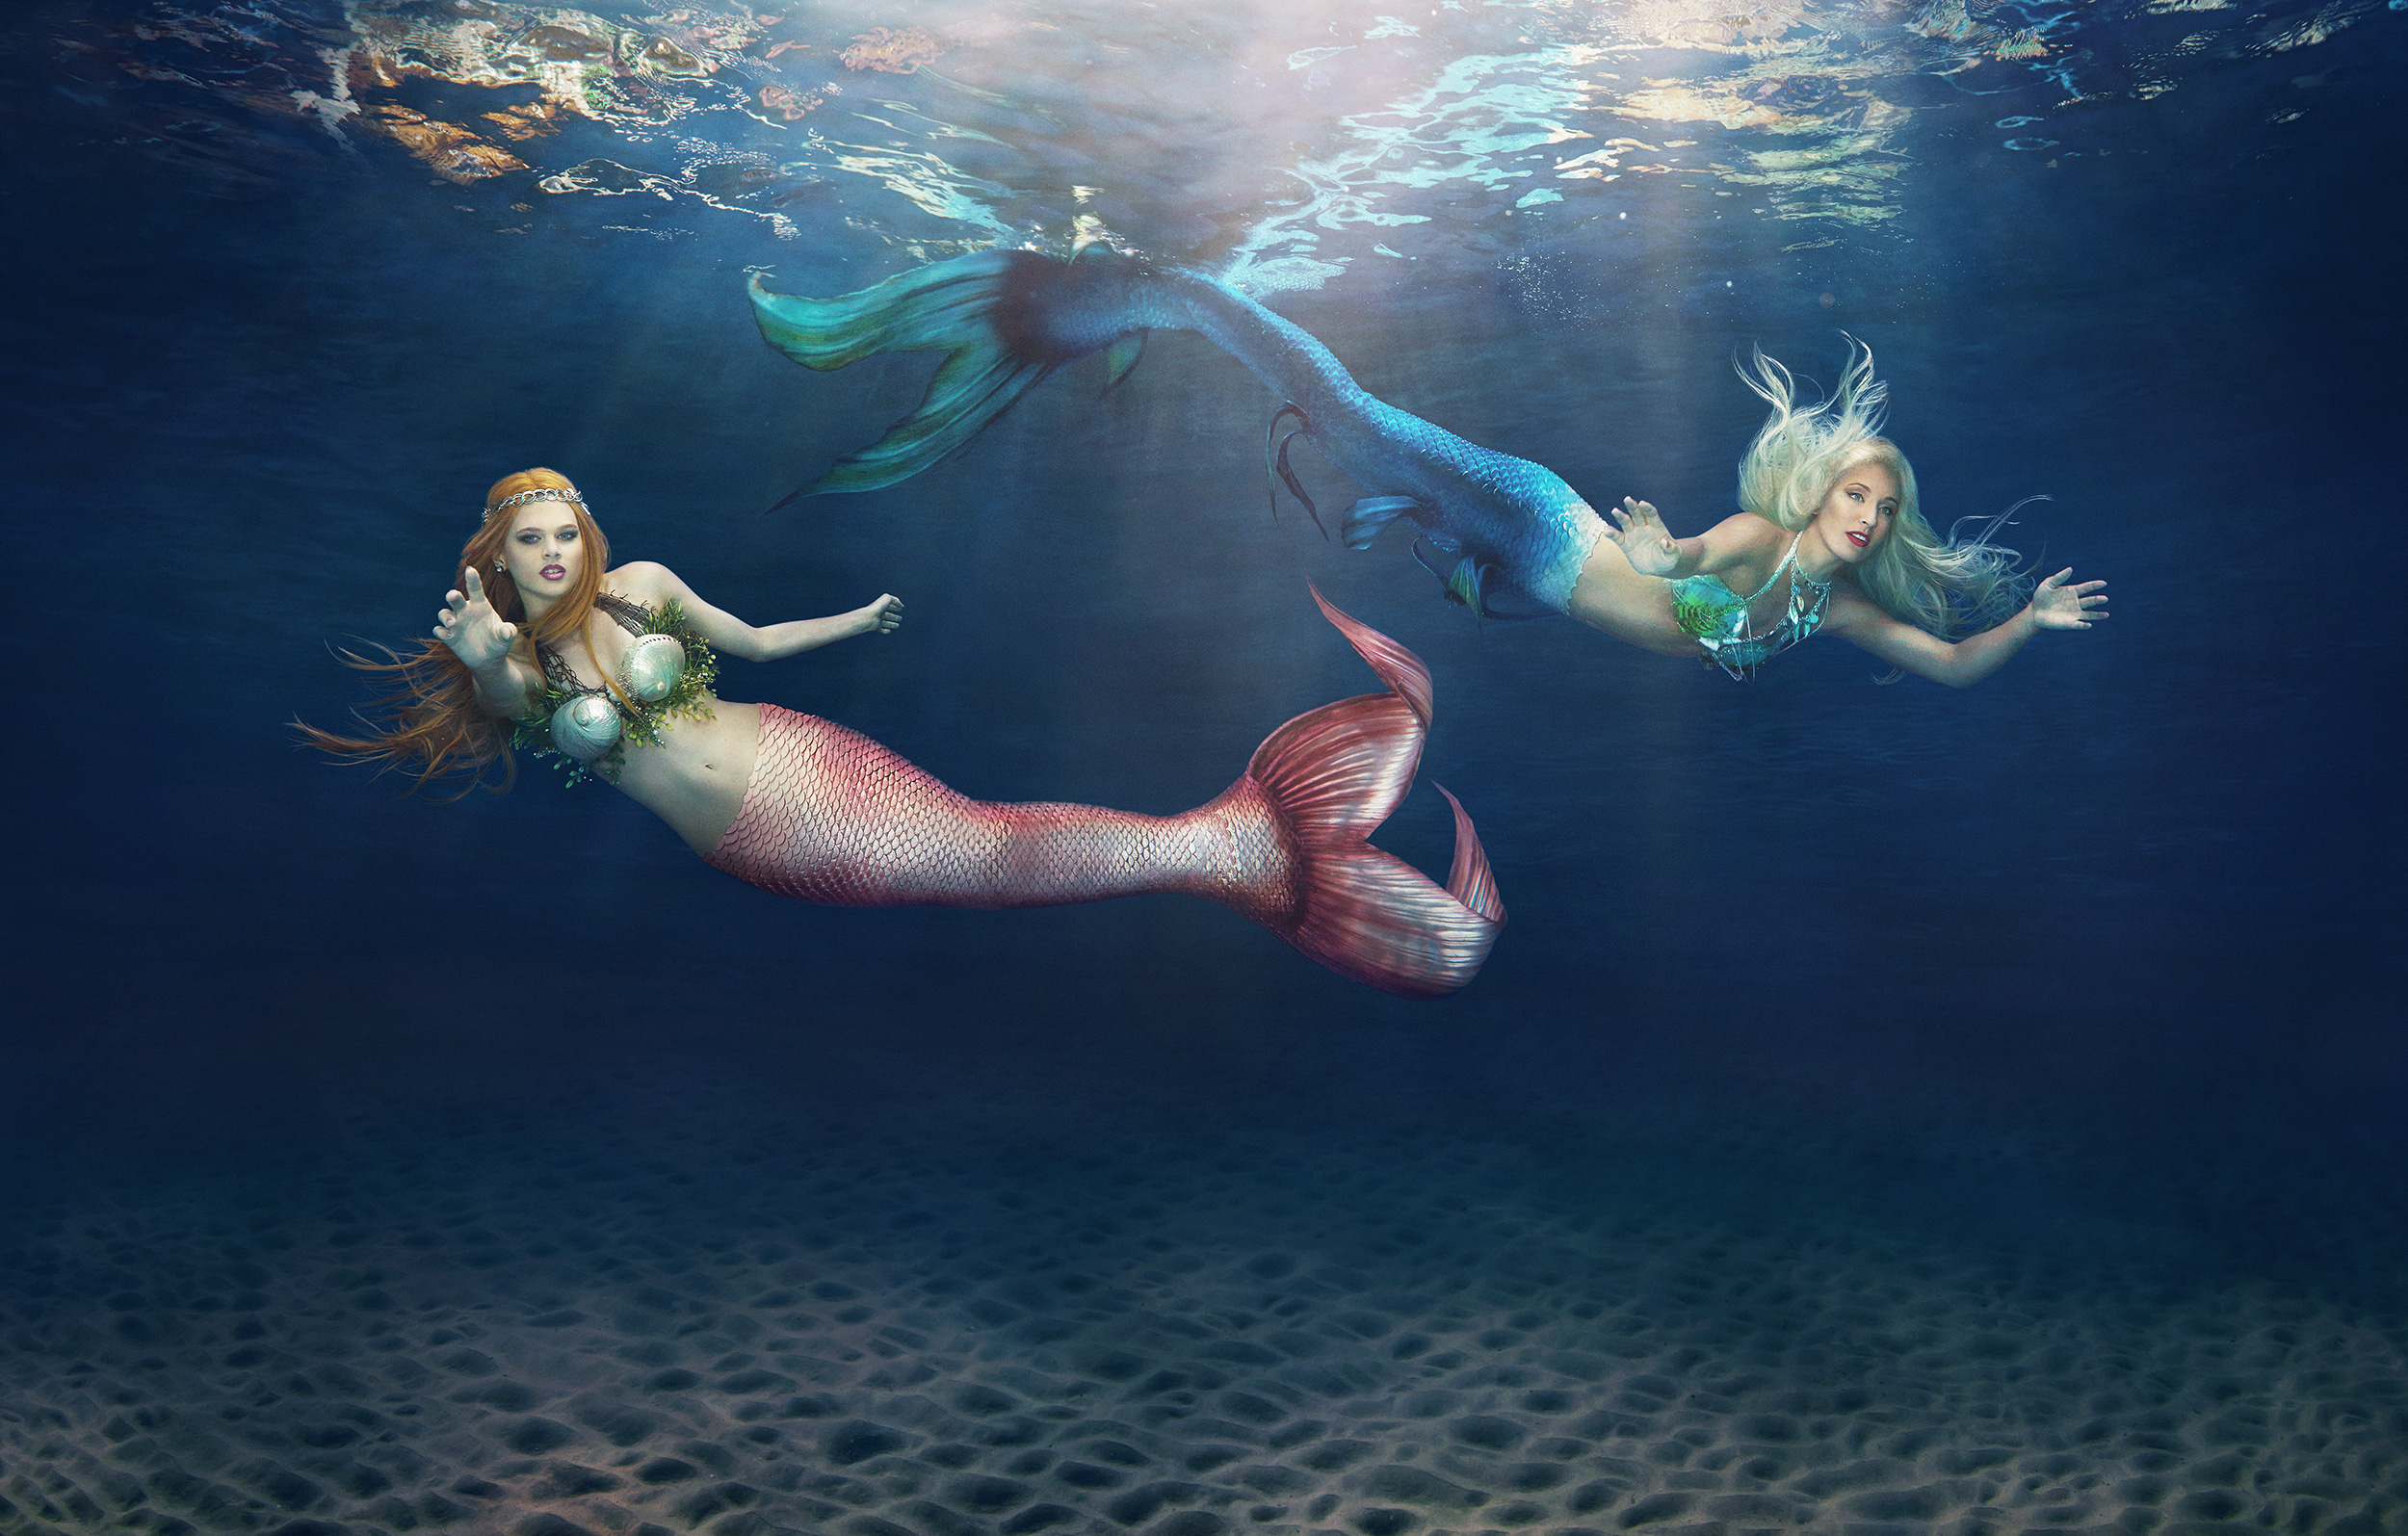 MERMAIDS_SHOT_02__MG_0140_12